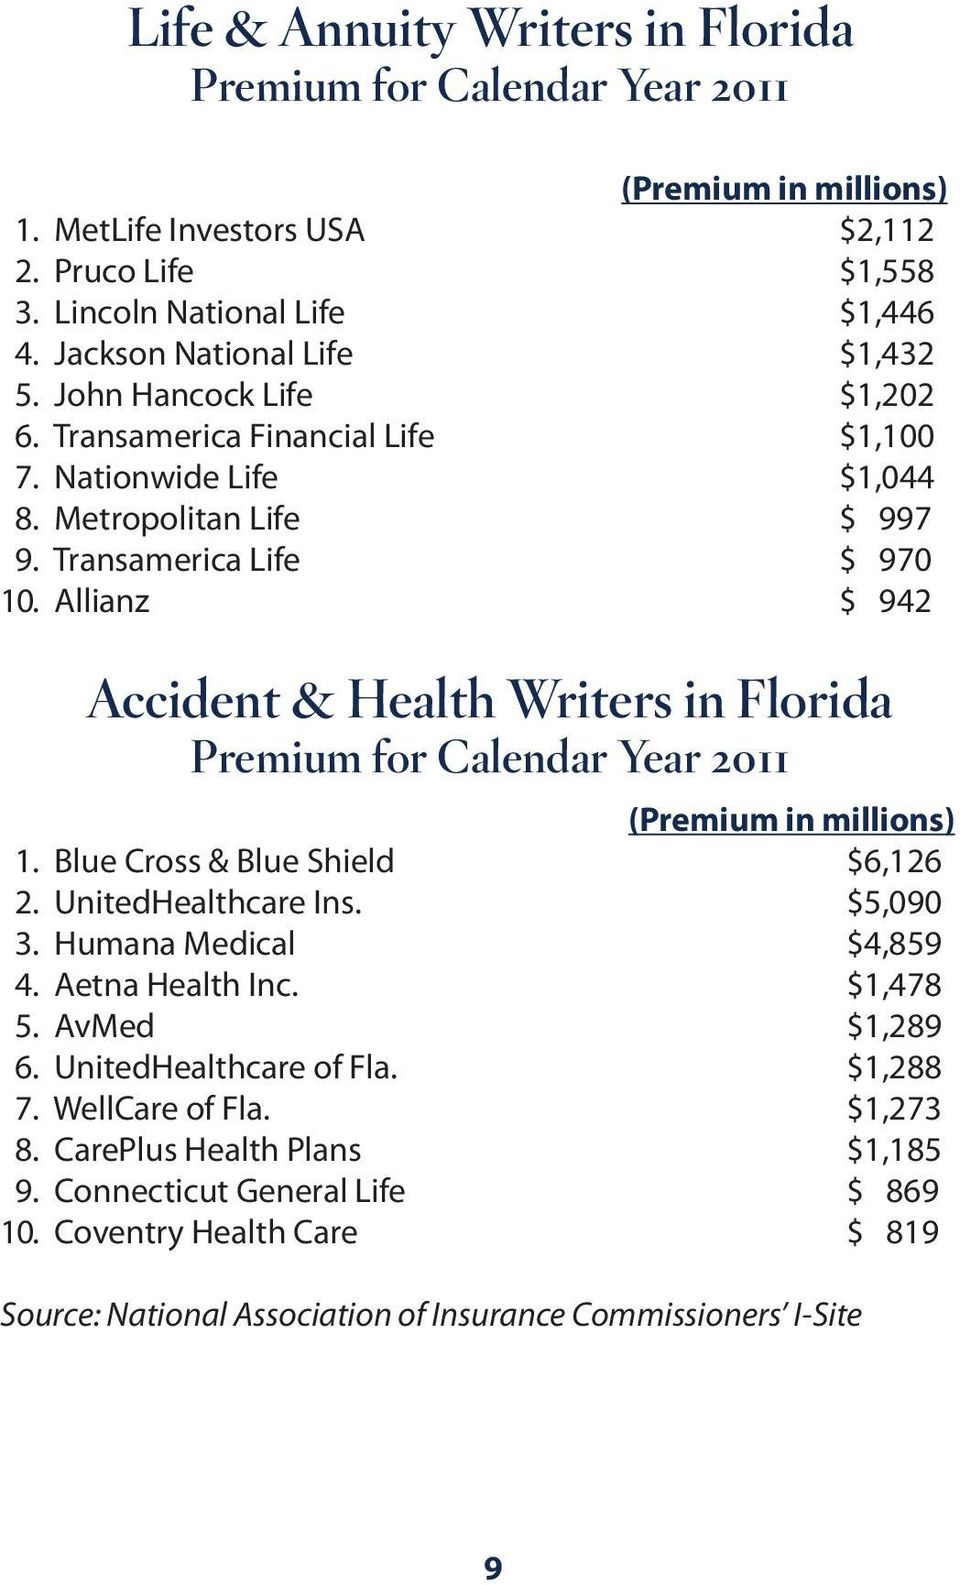 Allianz $ 942 Accident & Health Writers in Florida Premium for Calendar Year 2011 (Premium in millions) 1. Blue Cross & Blue Shield $6,126 2. UnitedHealthcare Ins. $5,090 3. Humana Medical $4,859 4.